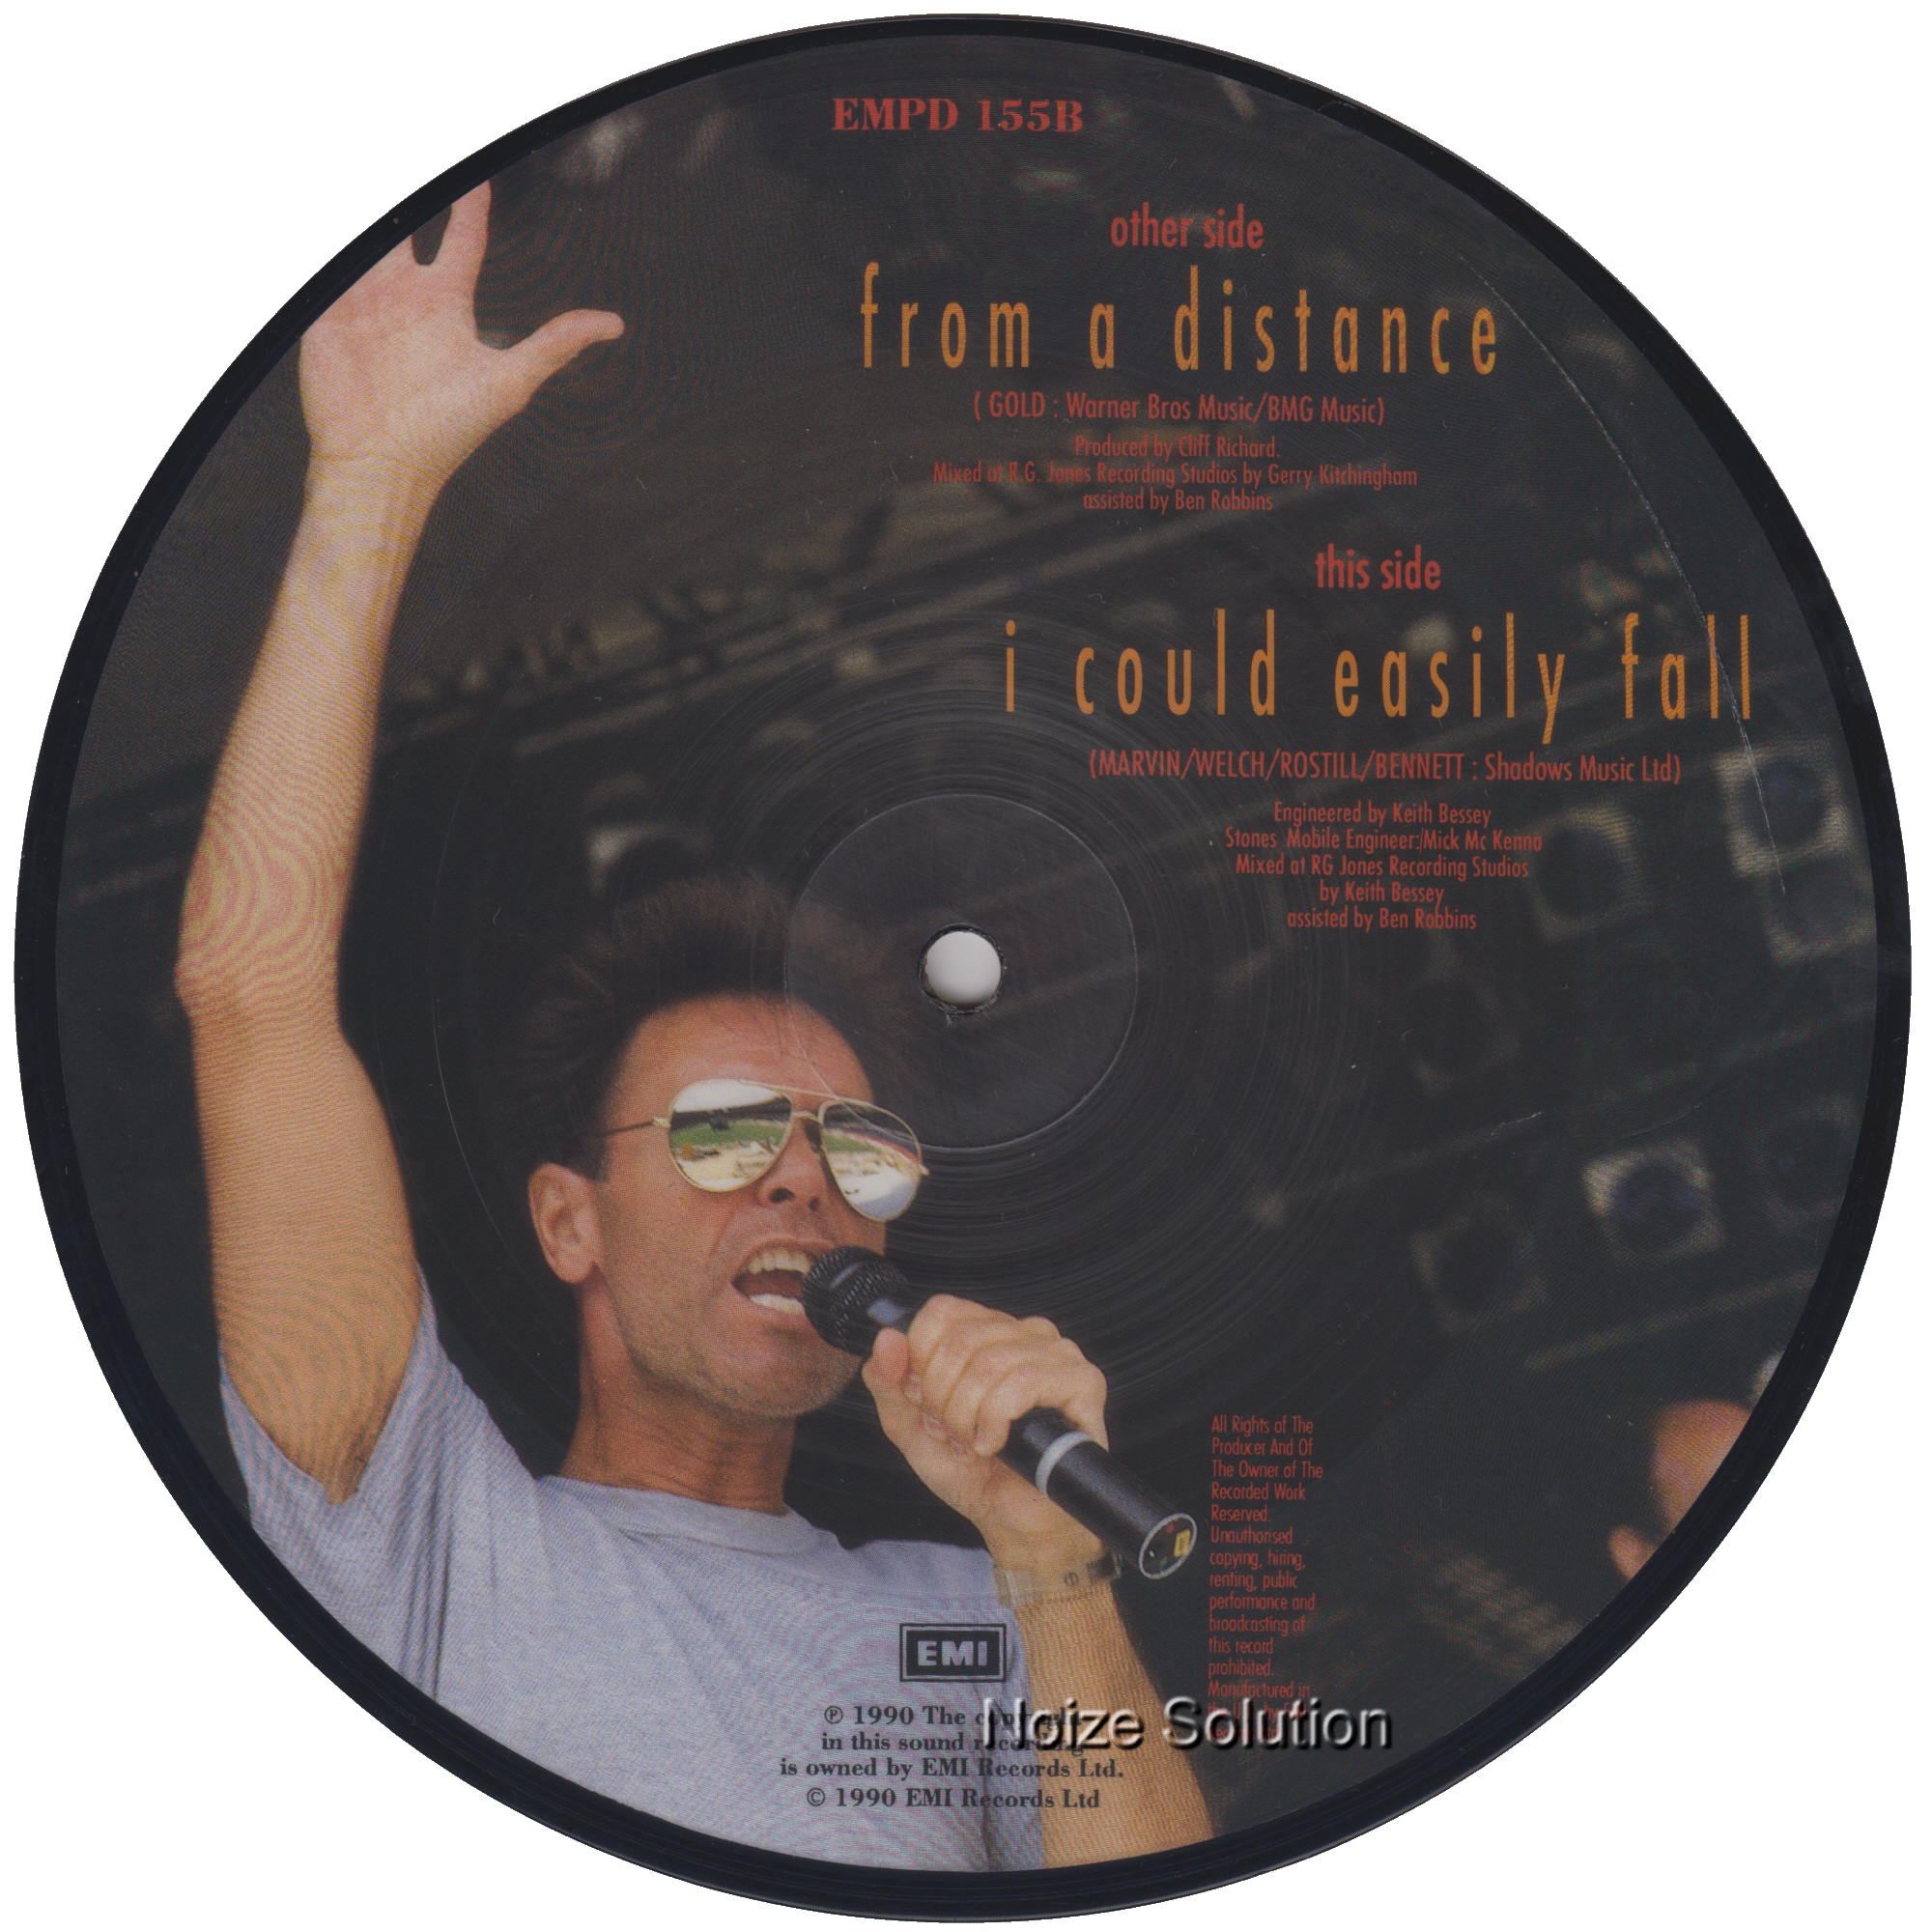 Cliff Richard - From A Distance 7 inch vinyl Picture Disc Record Side 2.